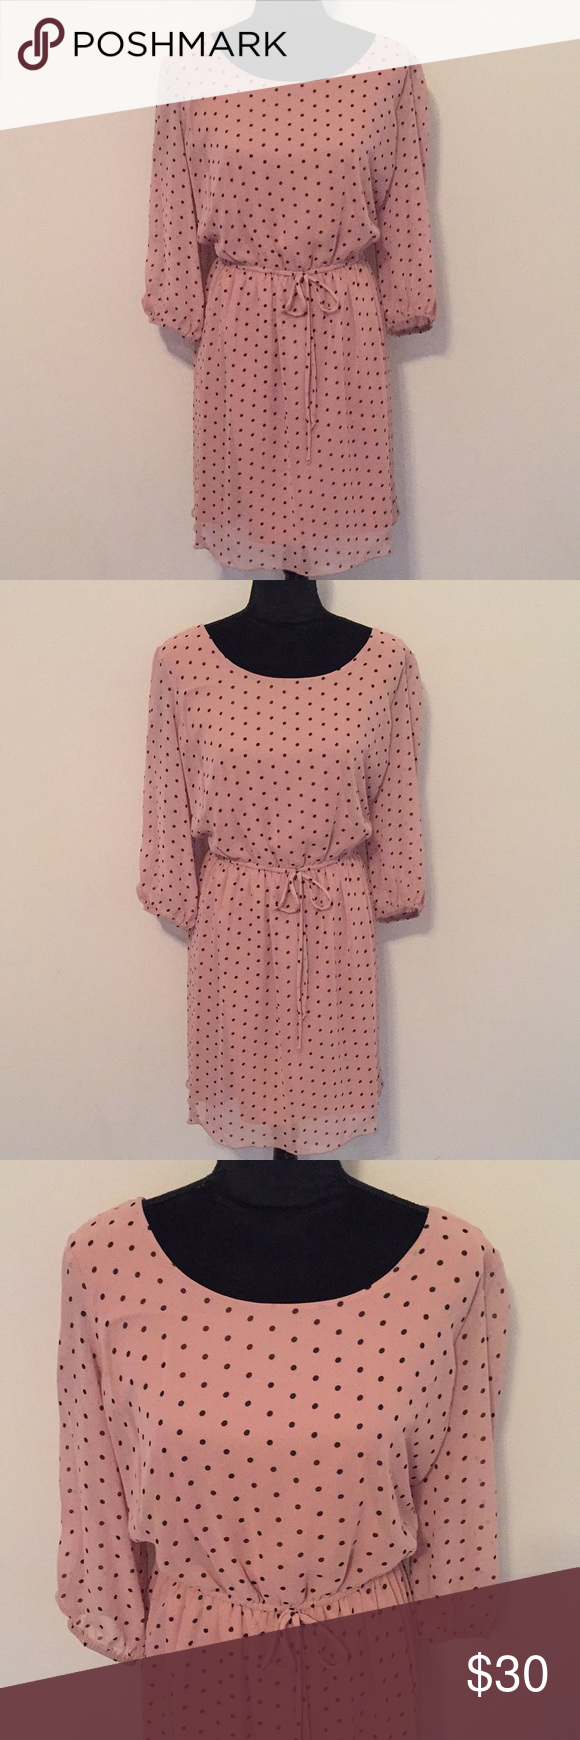 "72eaaca5c03 Enfocus Pink Polka Dot Dress Size 14 Beautiful vintage look pink polka dot  dress with back button closure. New condition 100% Polyester Armpit across  20"" ..."